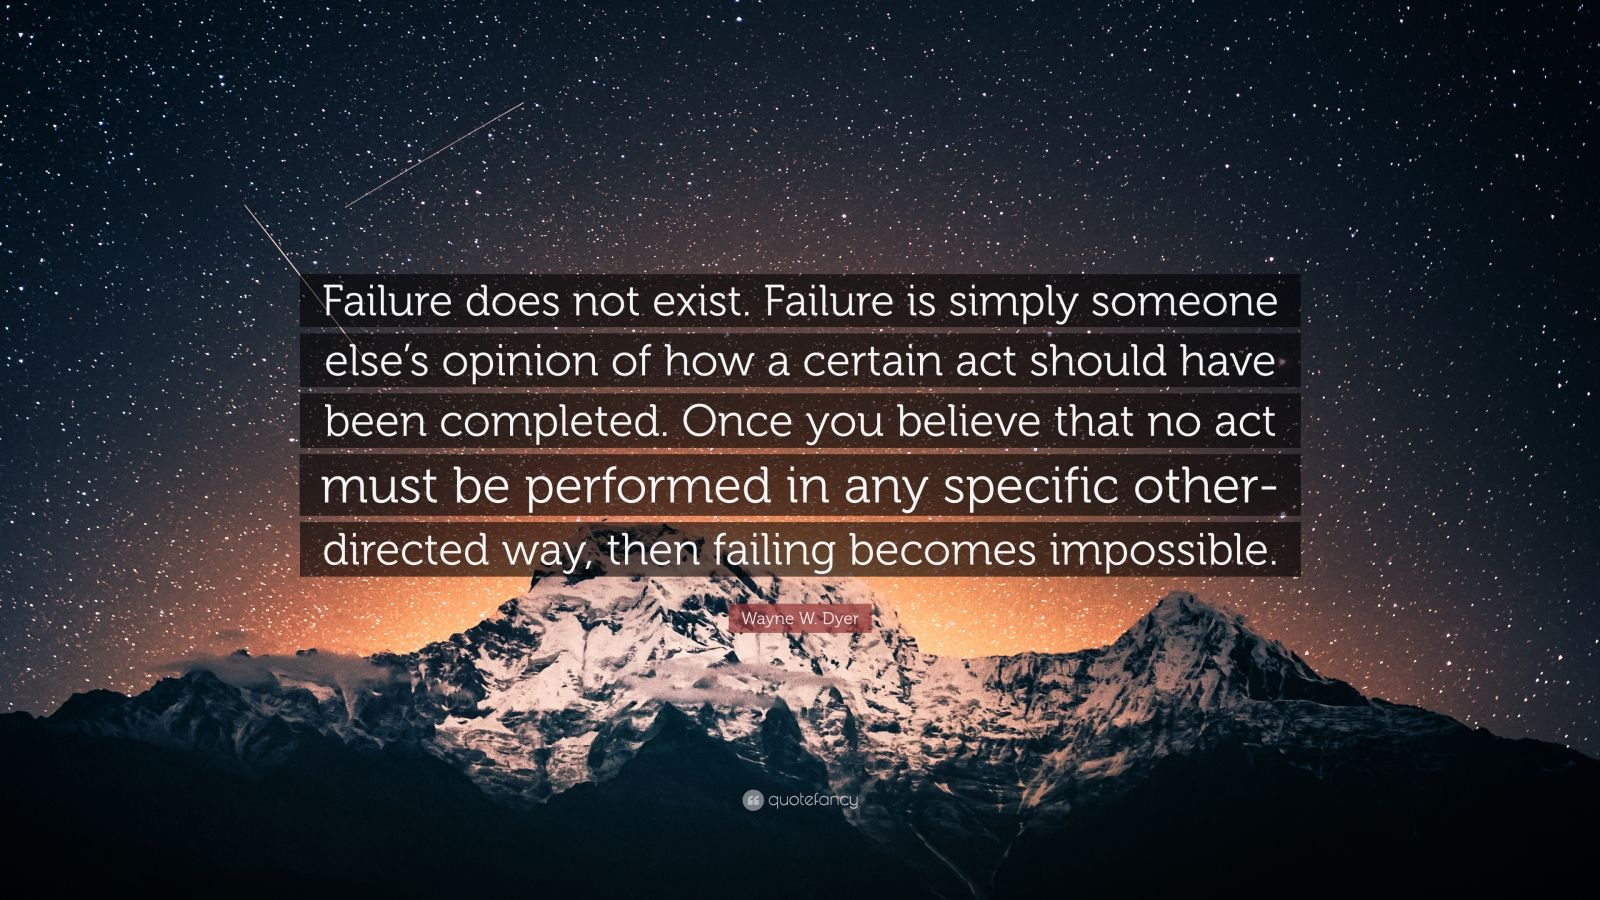 "Wayne W. Dyer Quote: ""Failure does not exist. Failure is simply someone else's opinion of how a certain act should have been completed. Once you believe that no act must be performed in any specific other-directed way, then failing becomes impossible."""